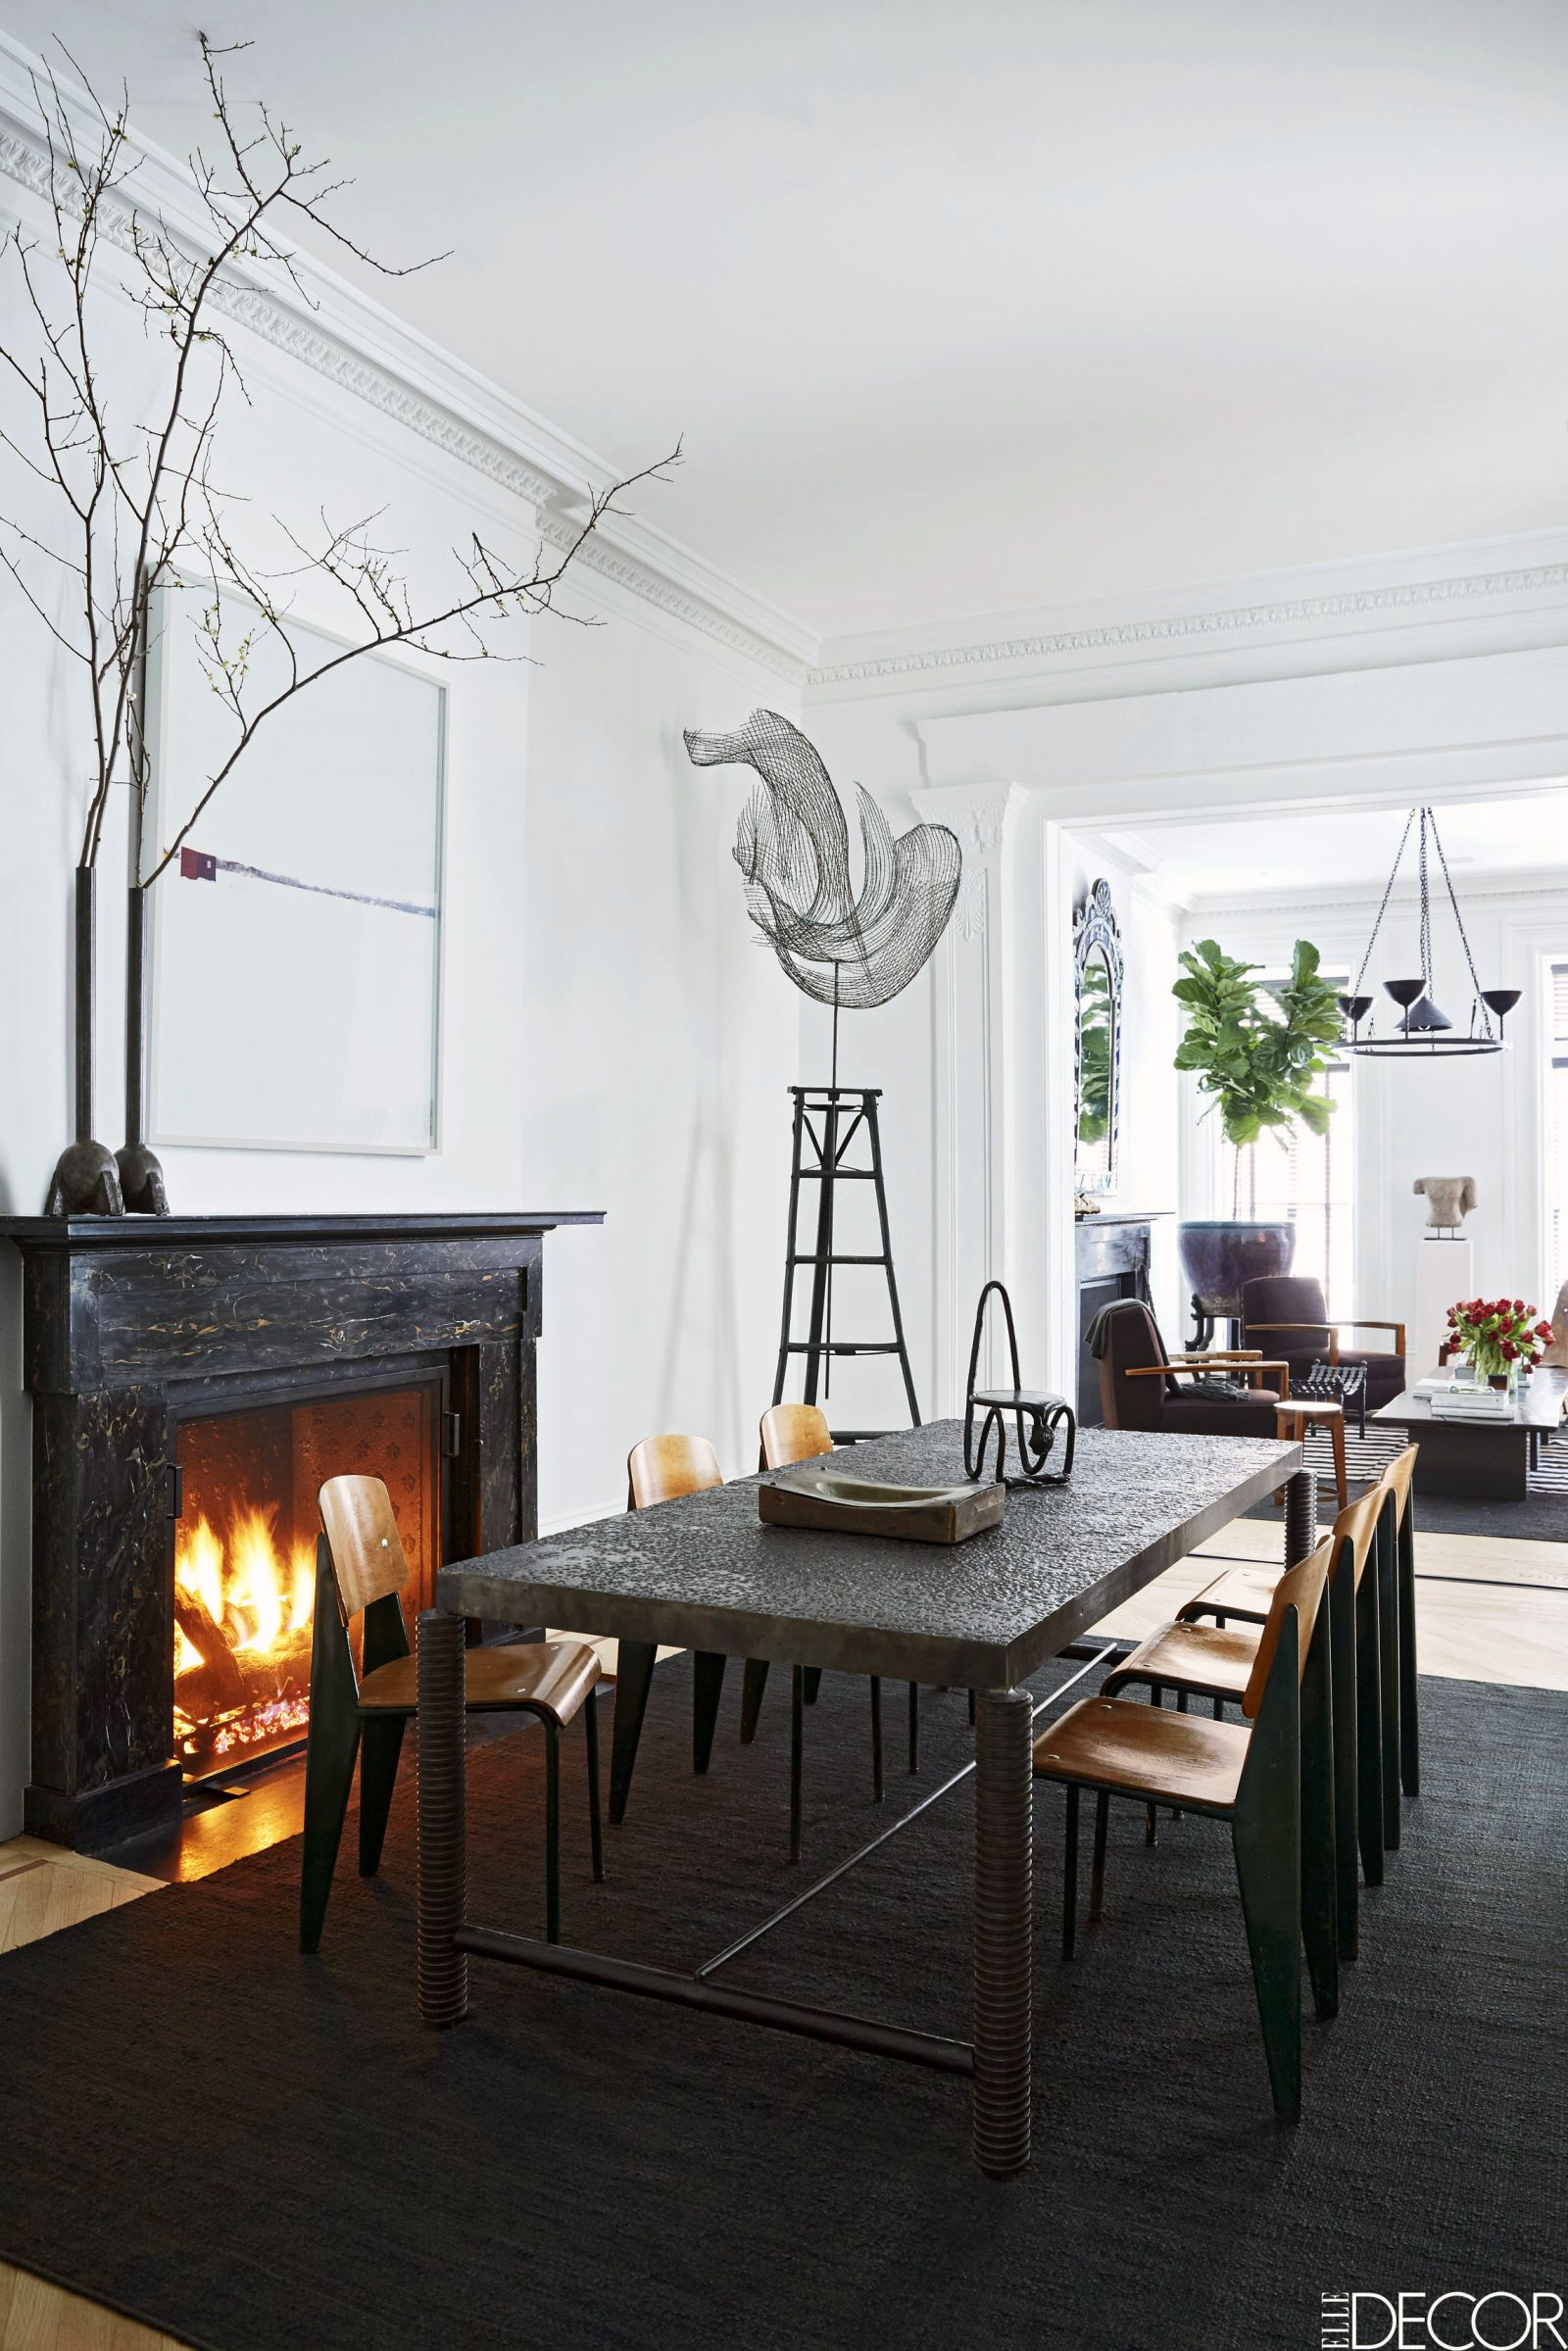 10 stunning dining rooms for hosting holiday feasts west village